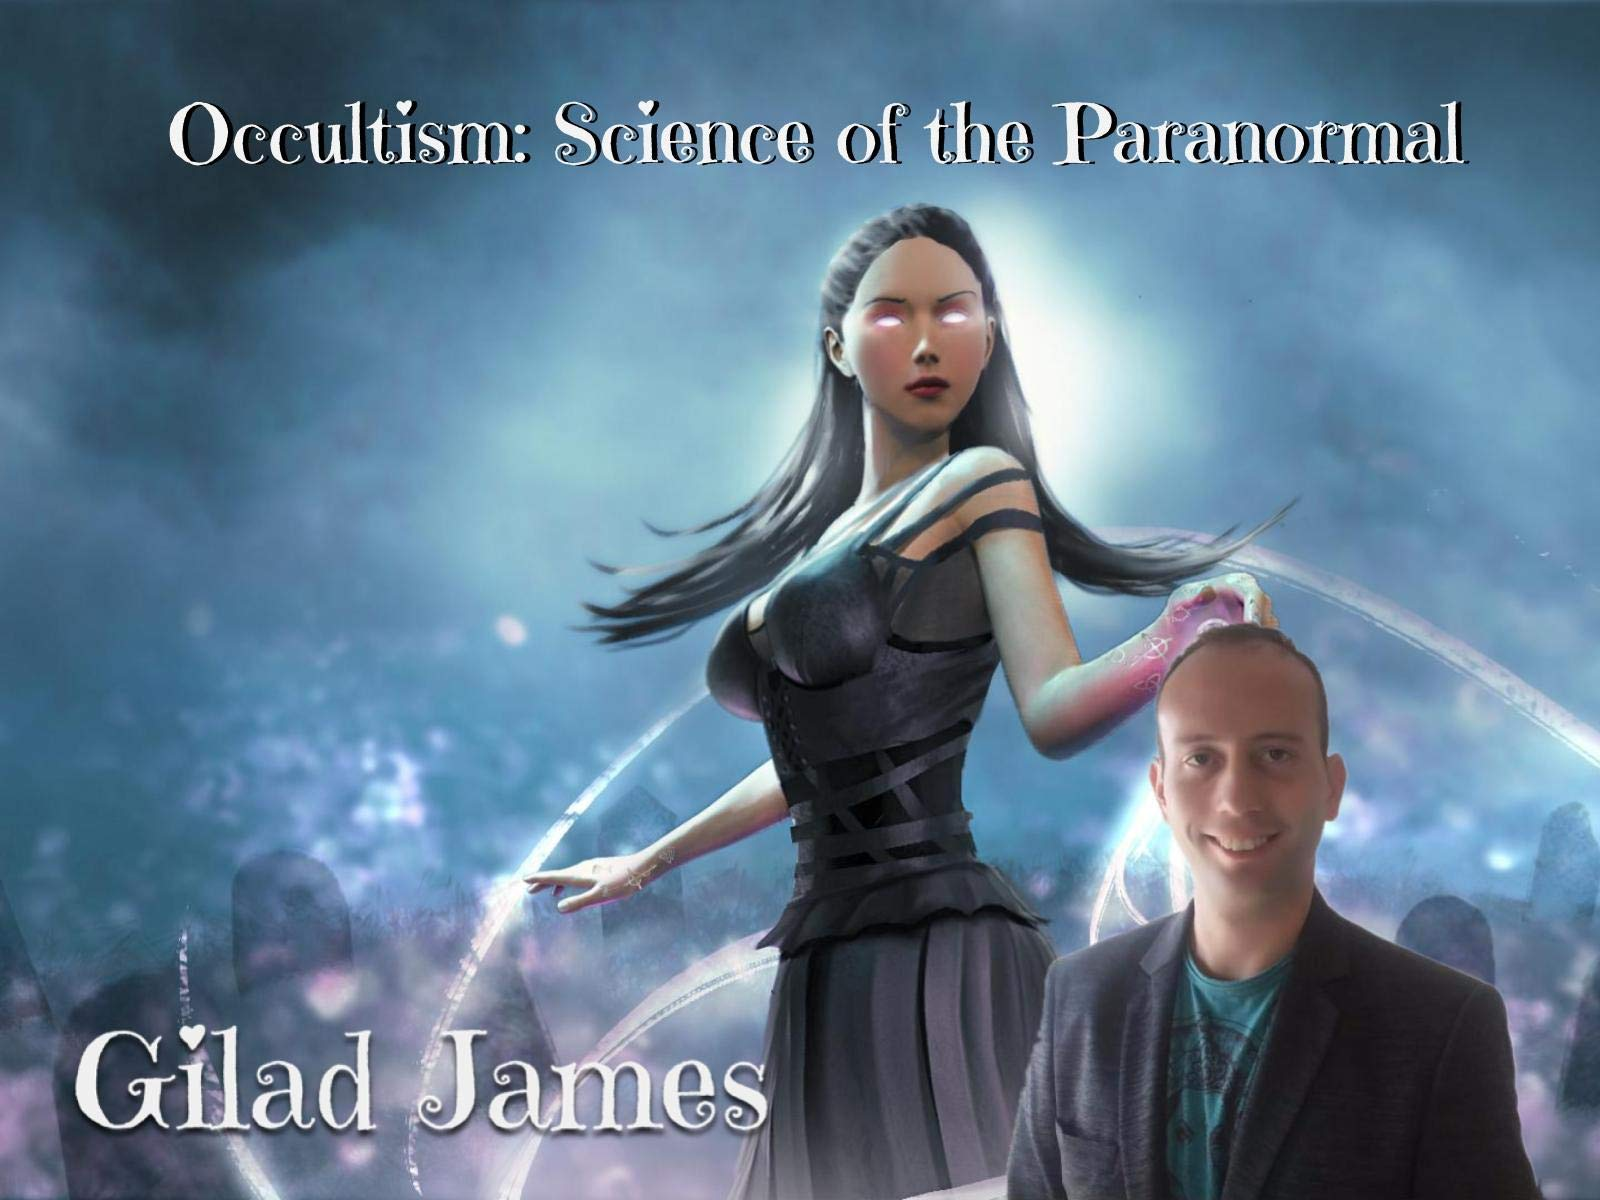 Occultism: Science of the Paranormal - Season 4